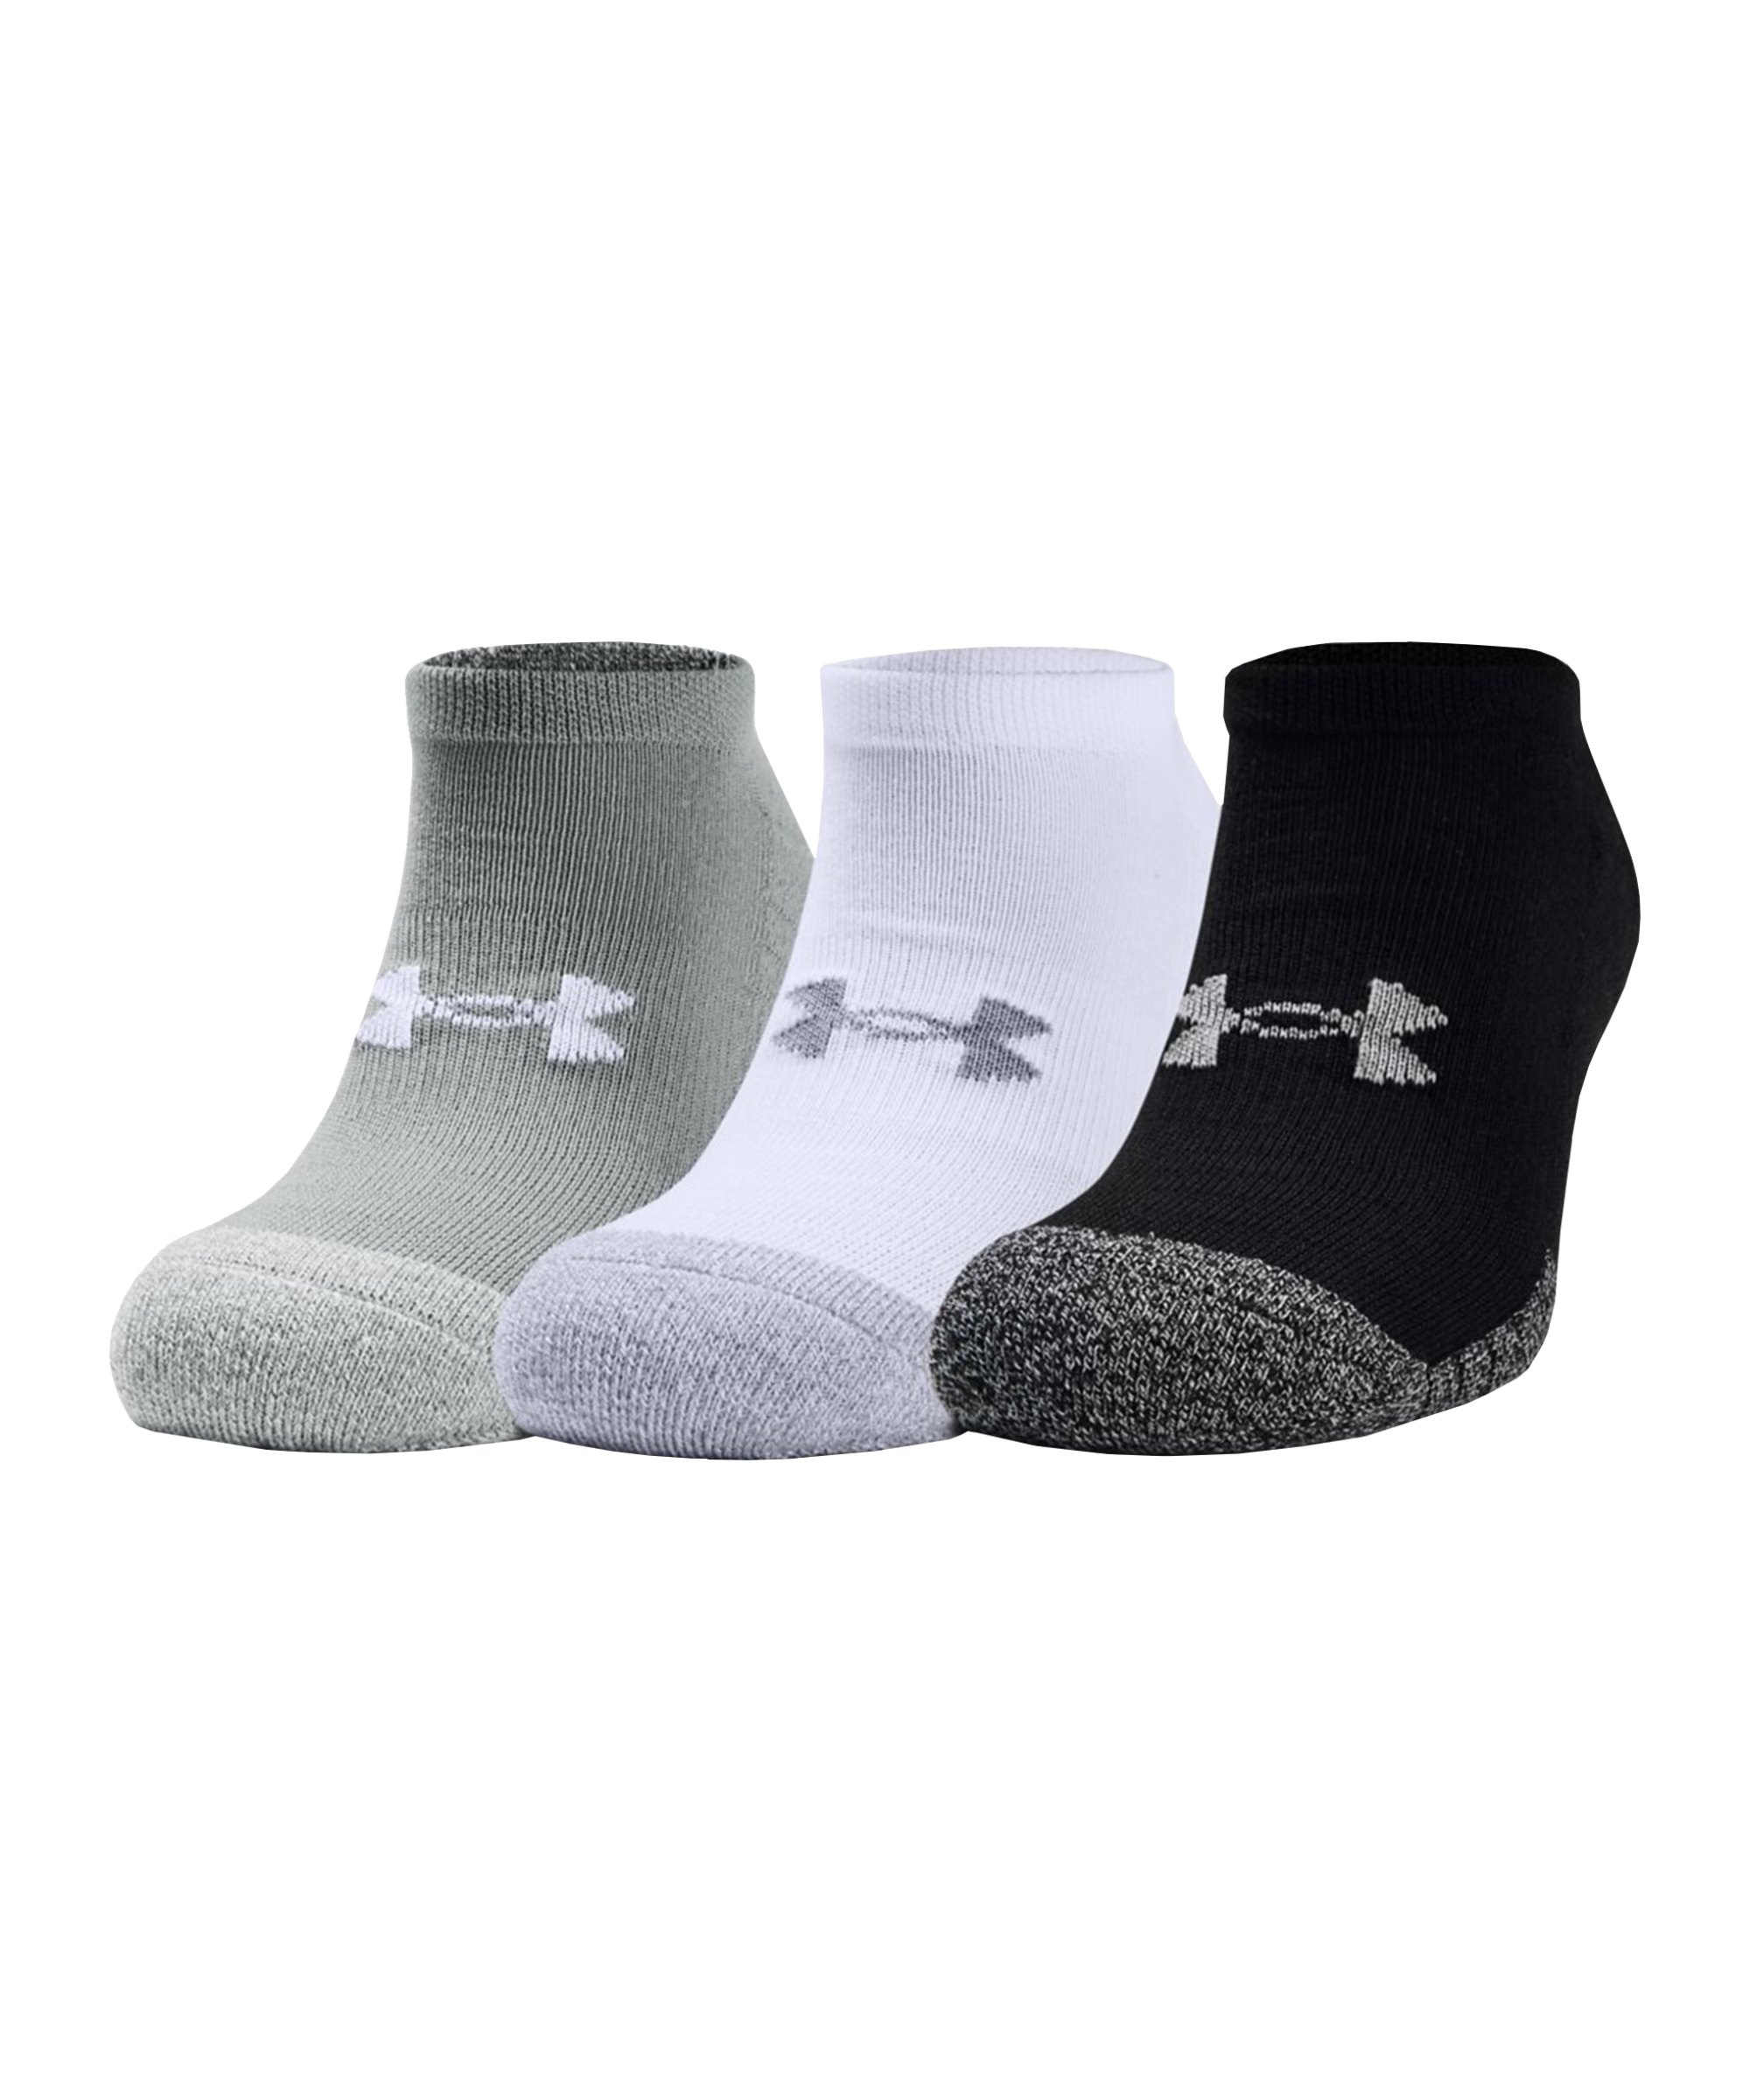 Under Armour HeatGear NoShow Socken F035 - grau